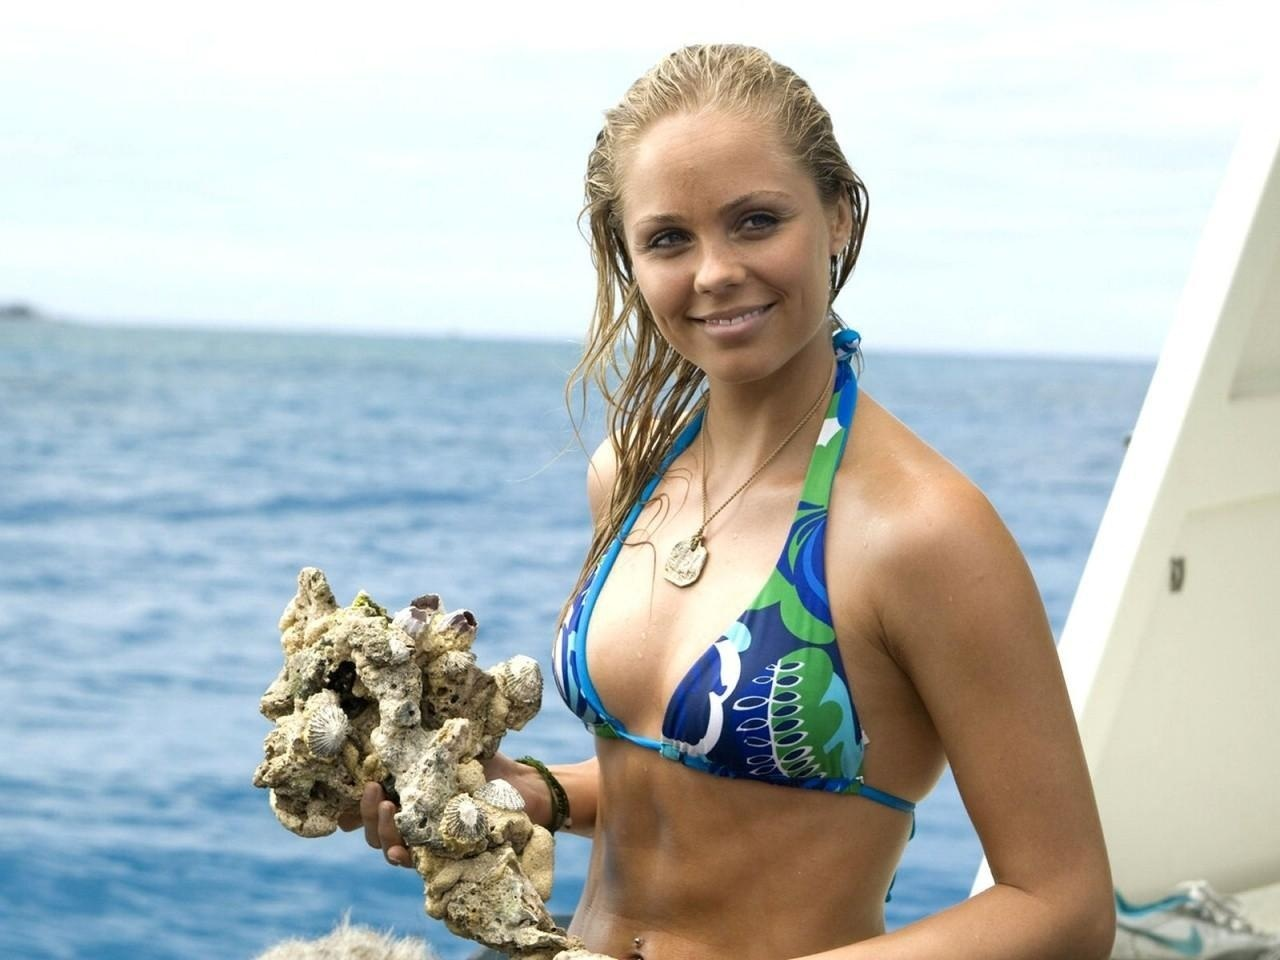 Sea Bikini Laura Vandervoort Wallpapers Hot